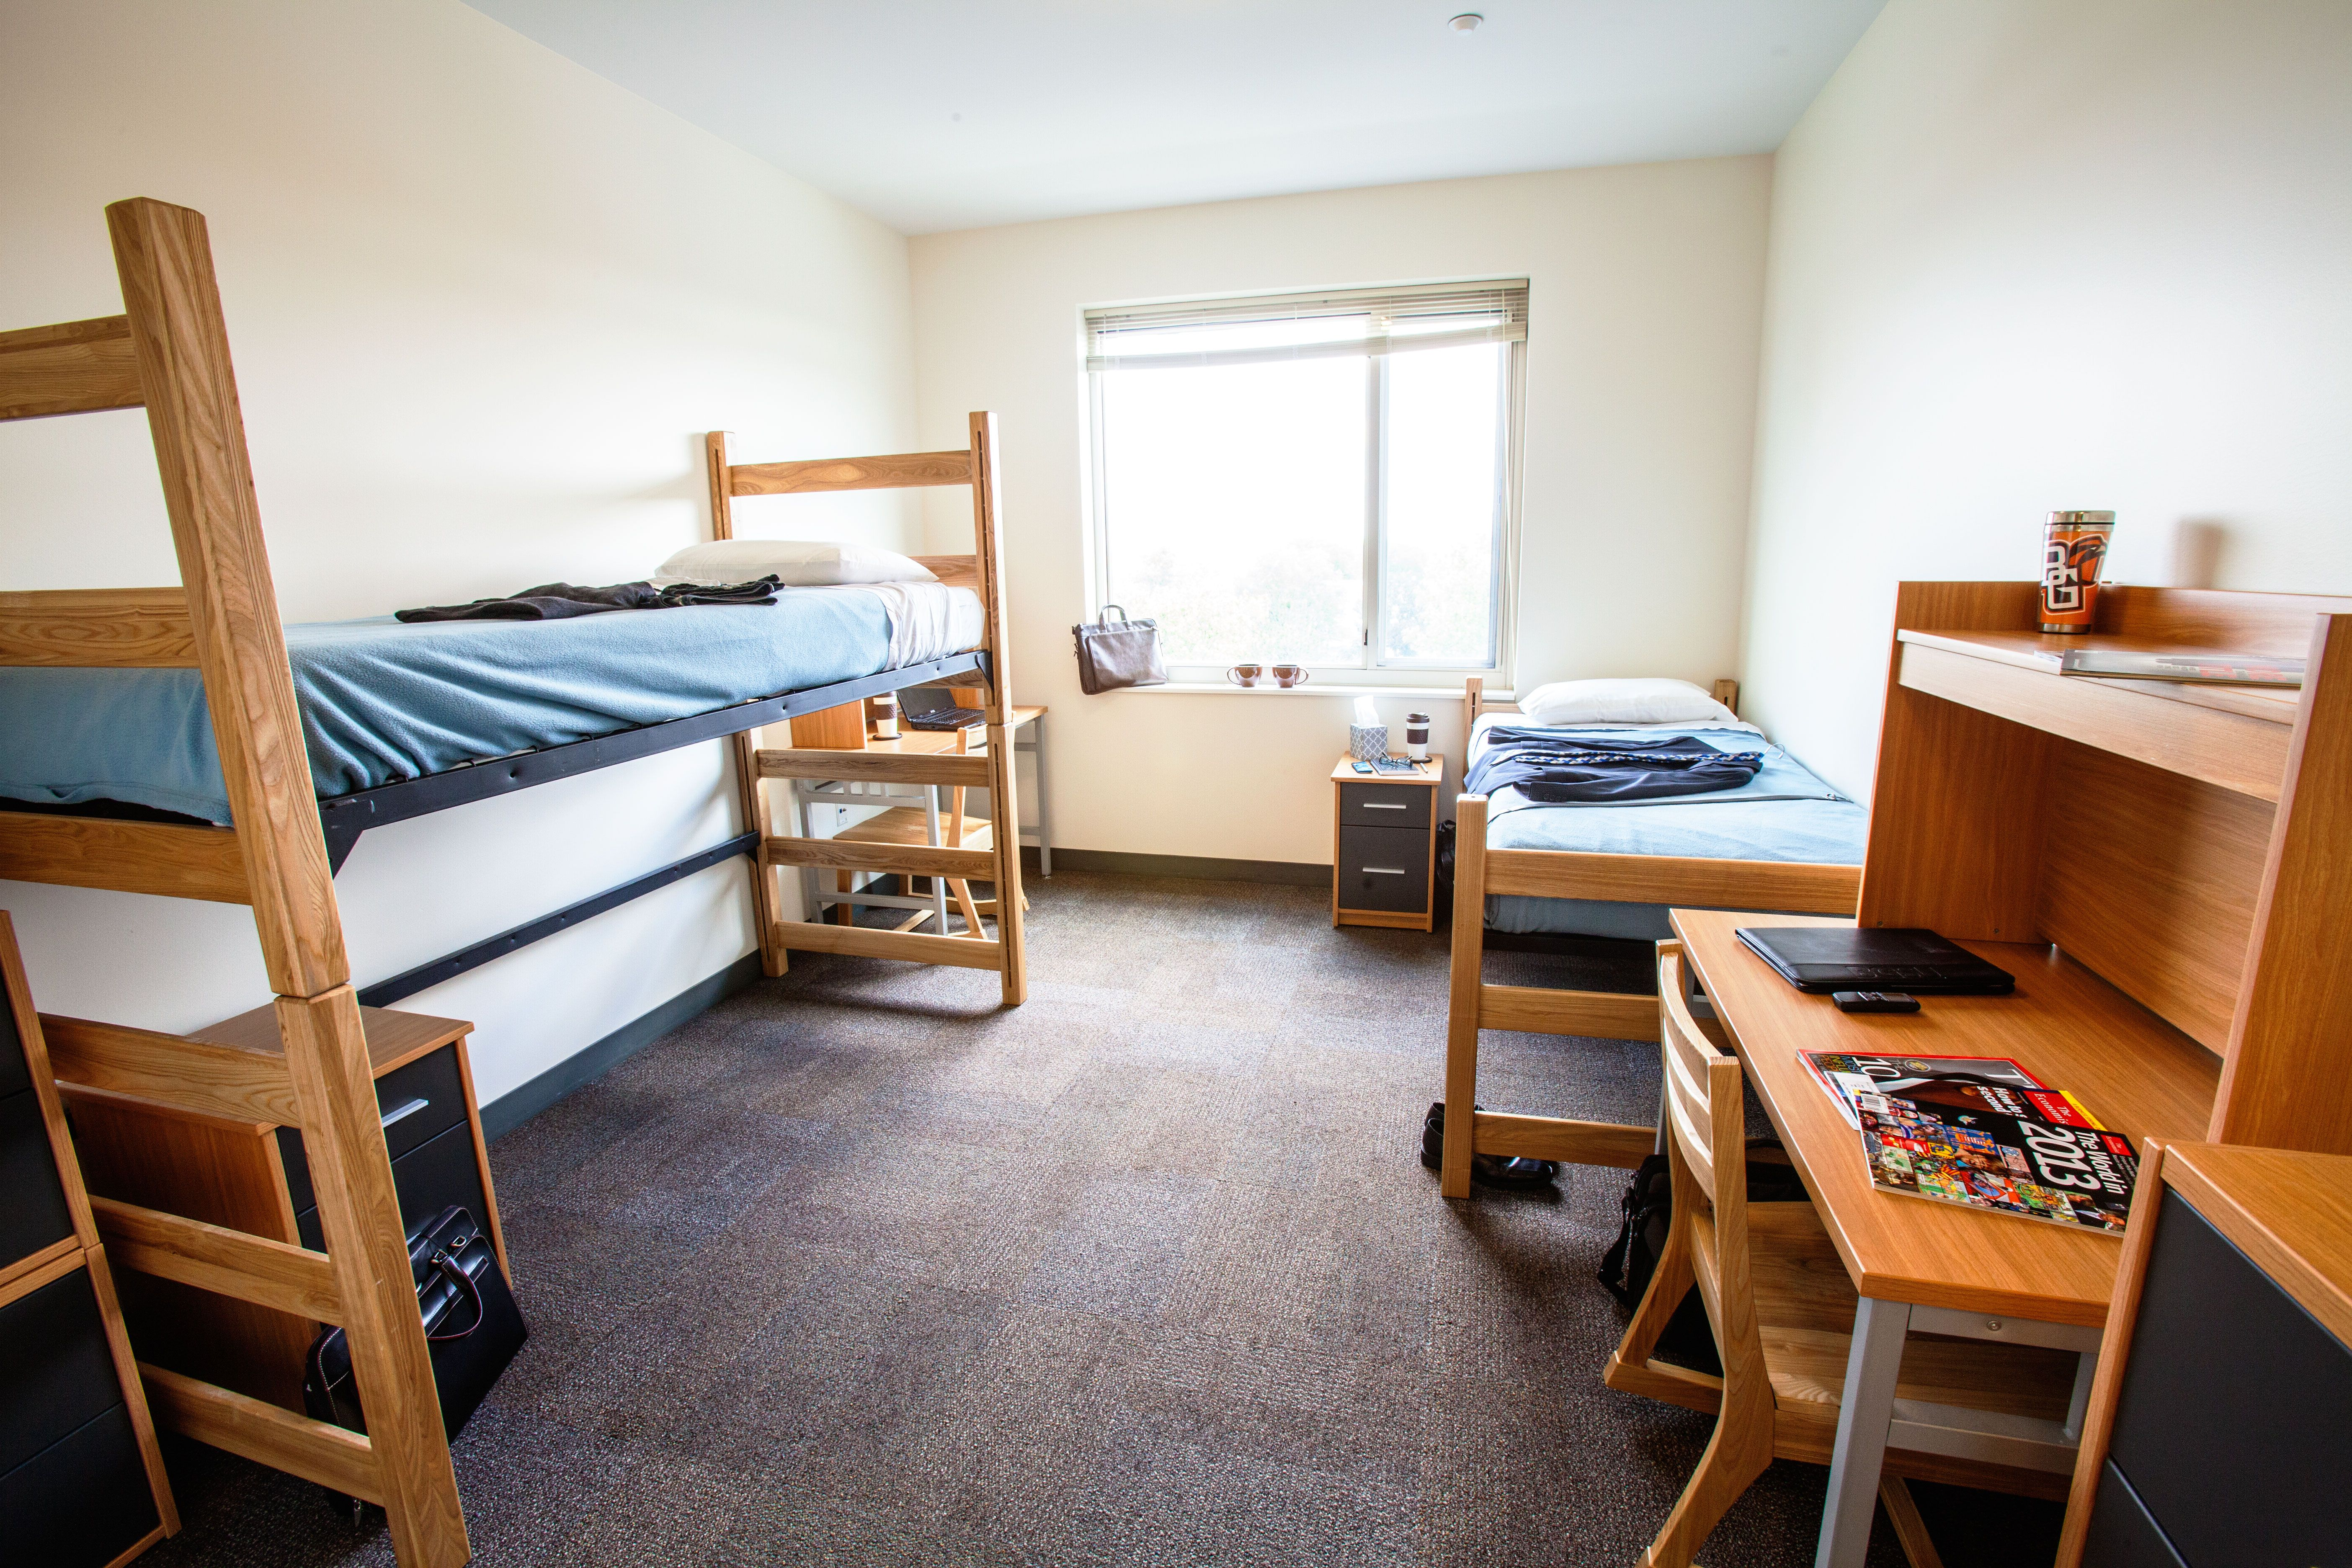 The Rooms At Centennial Housing Accommodations Dorm